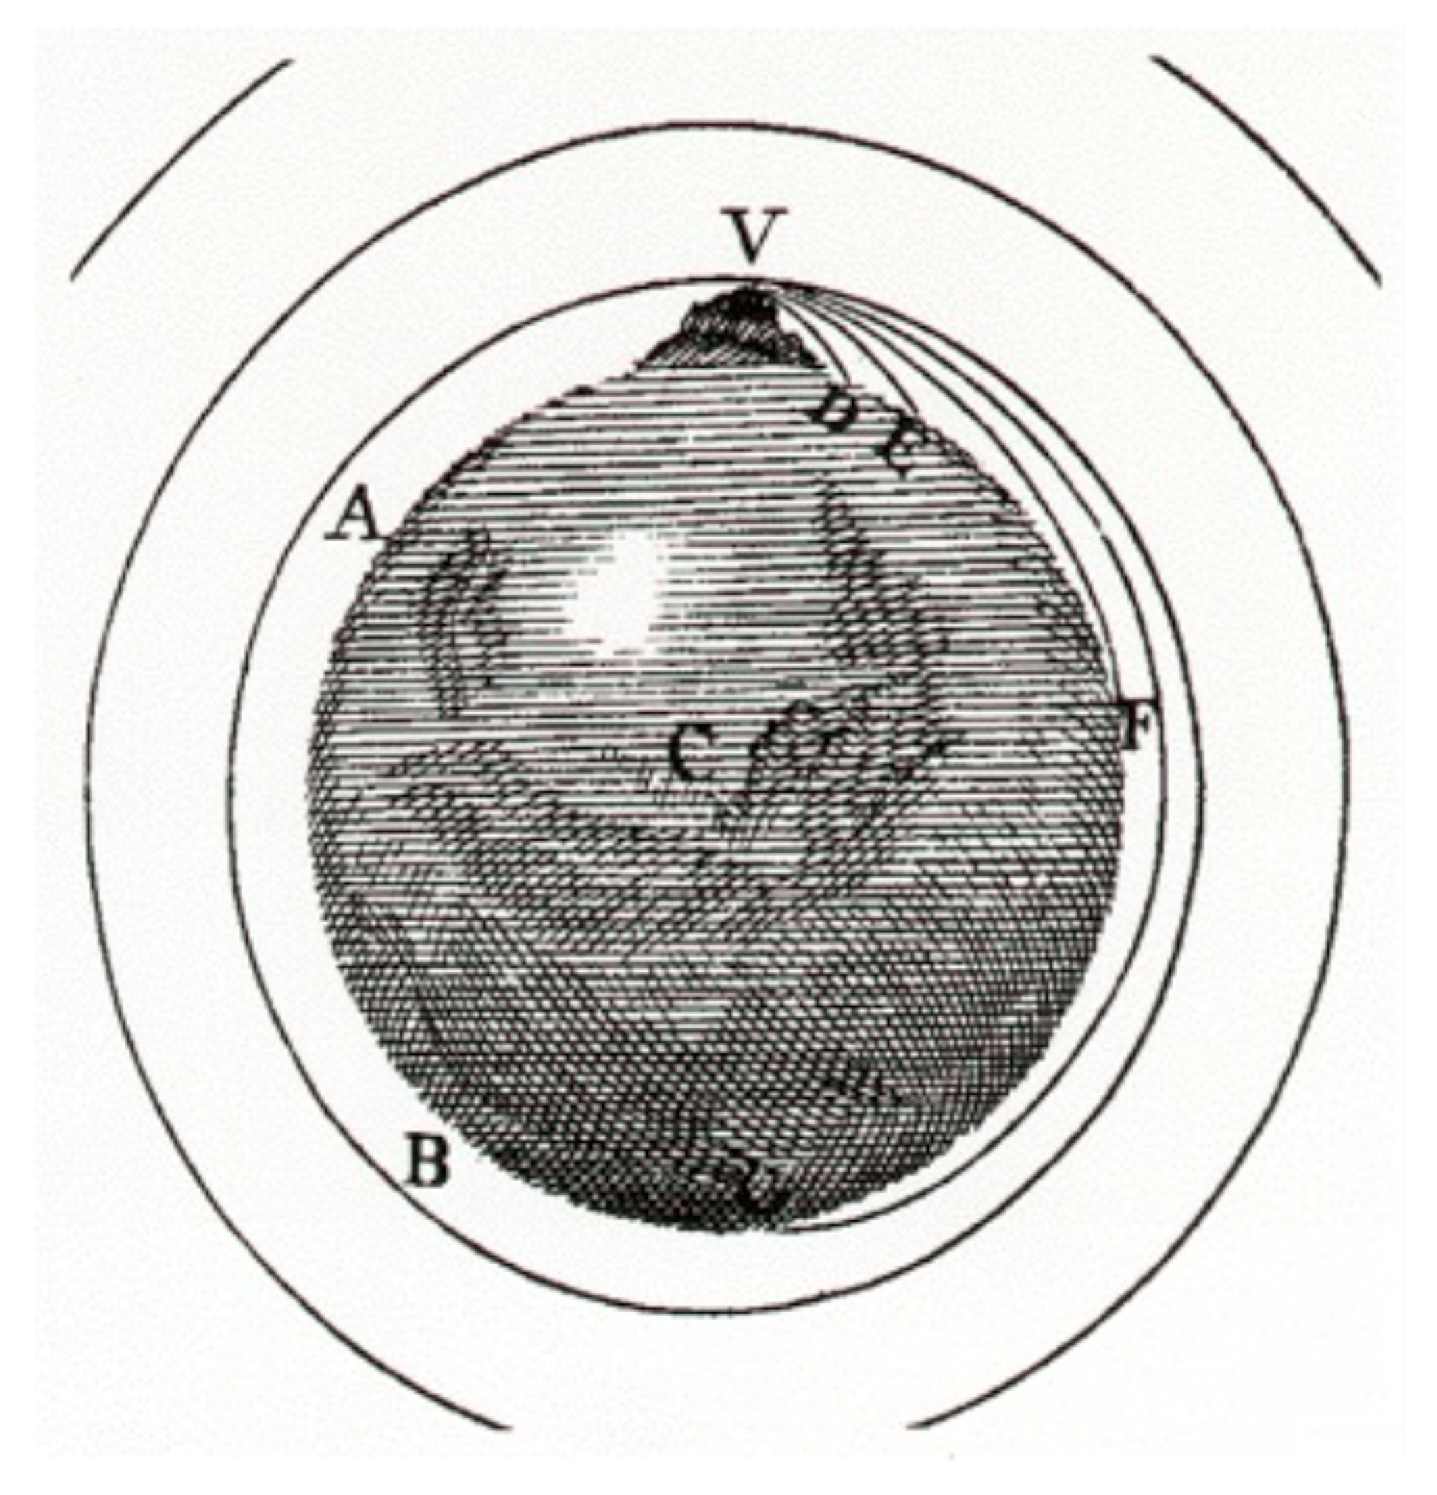 Lesson 9. The Cosmologies of Galileo and Newton